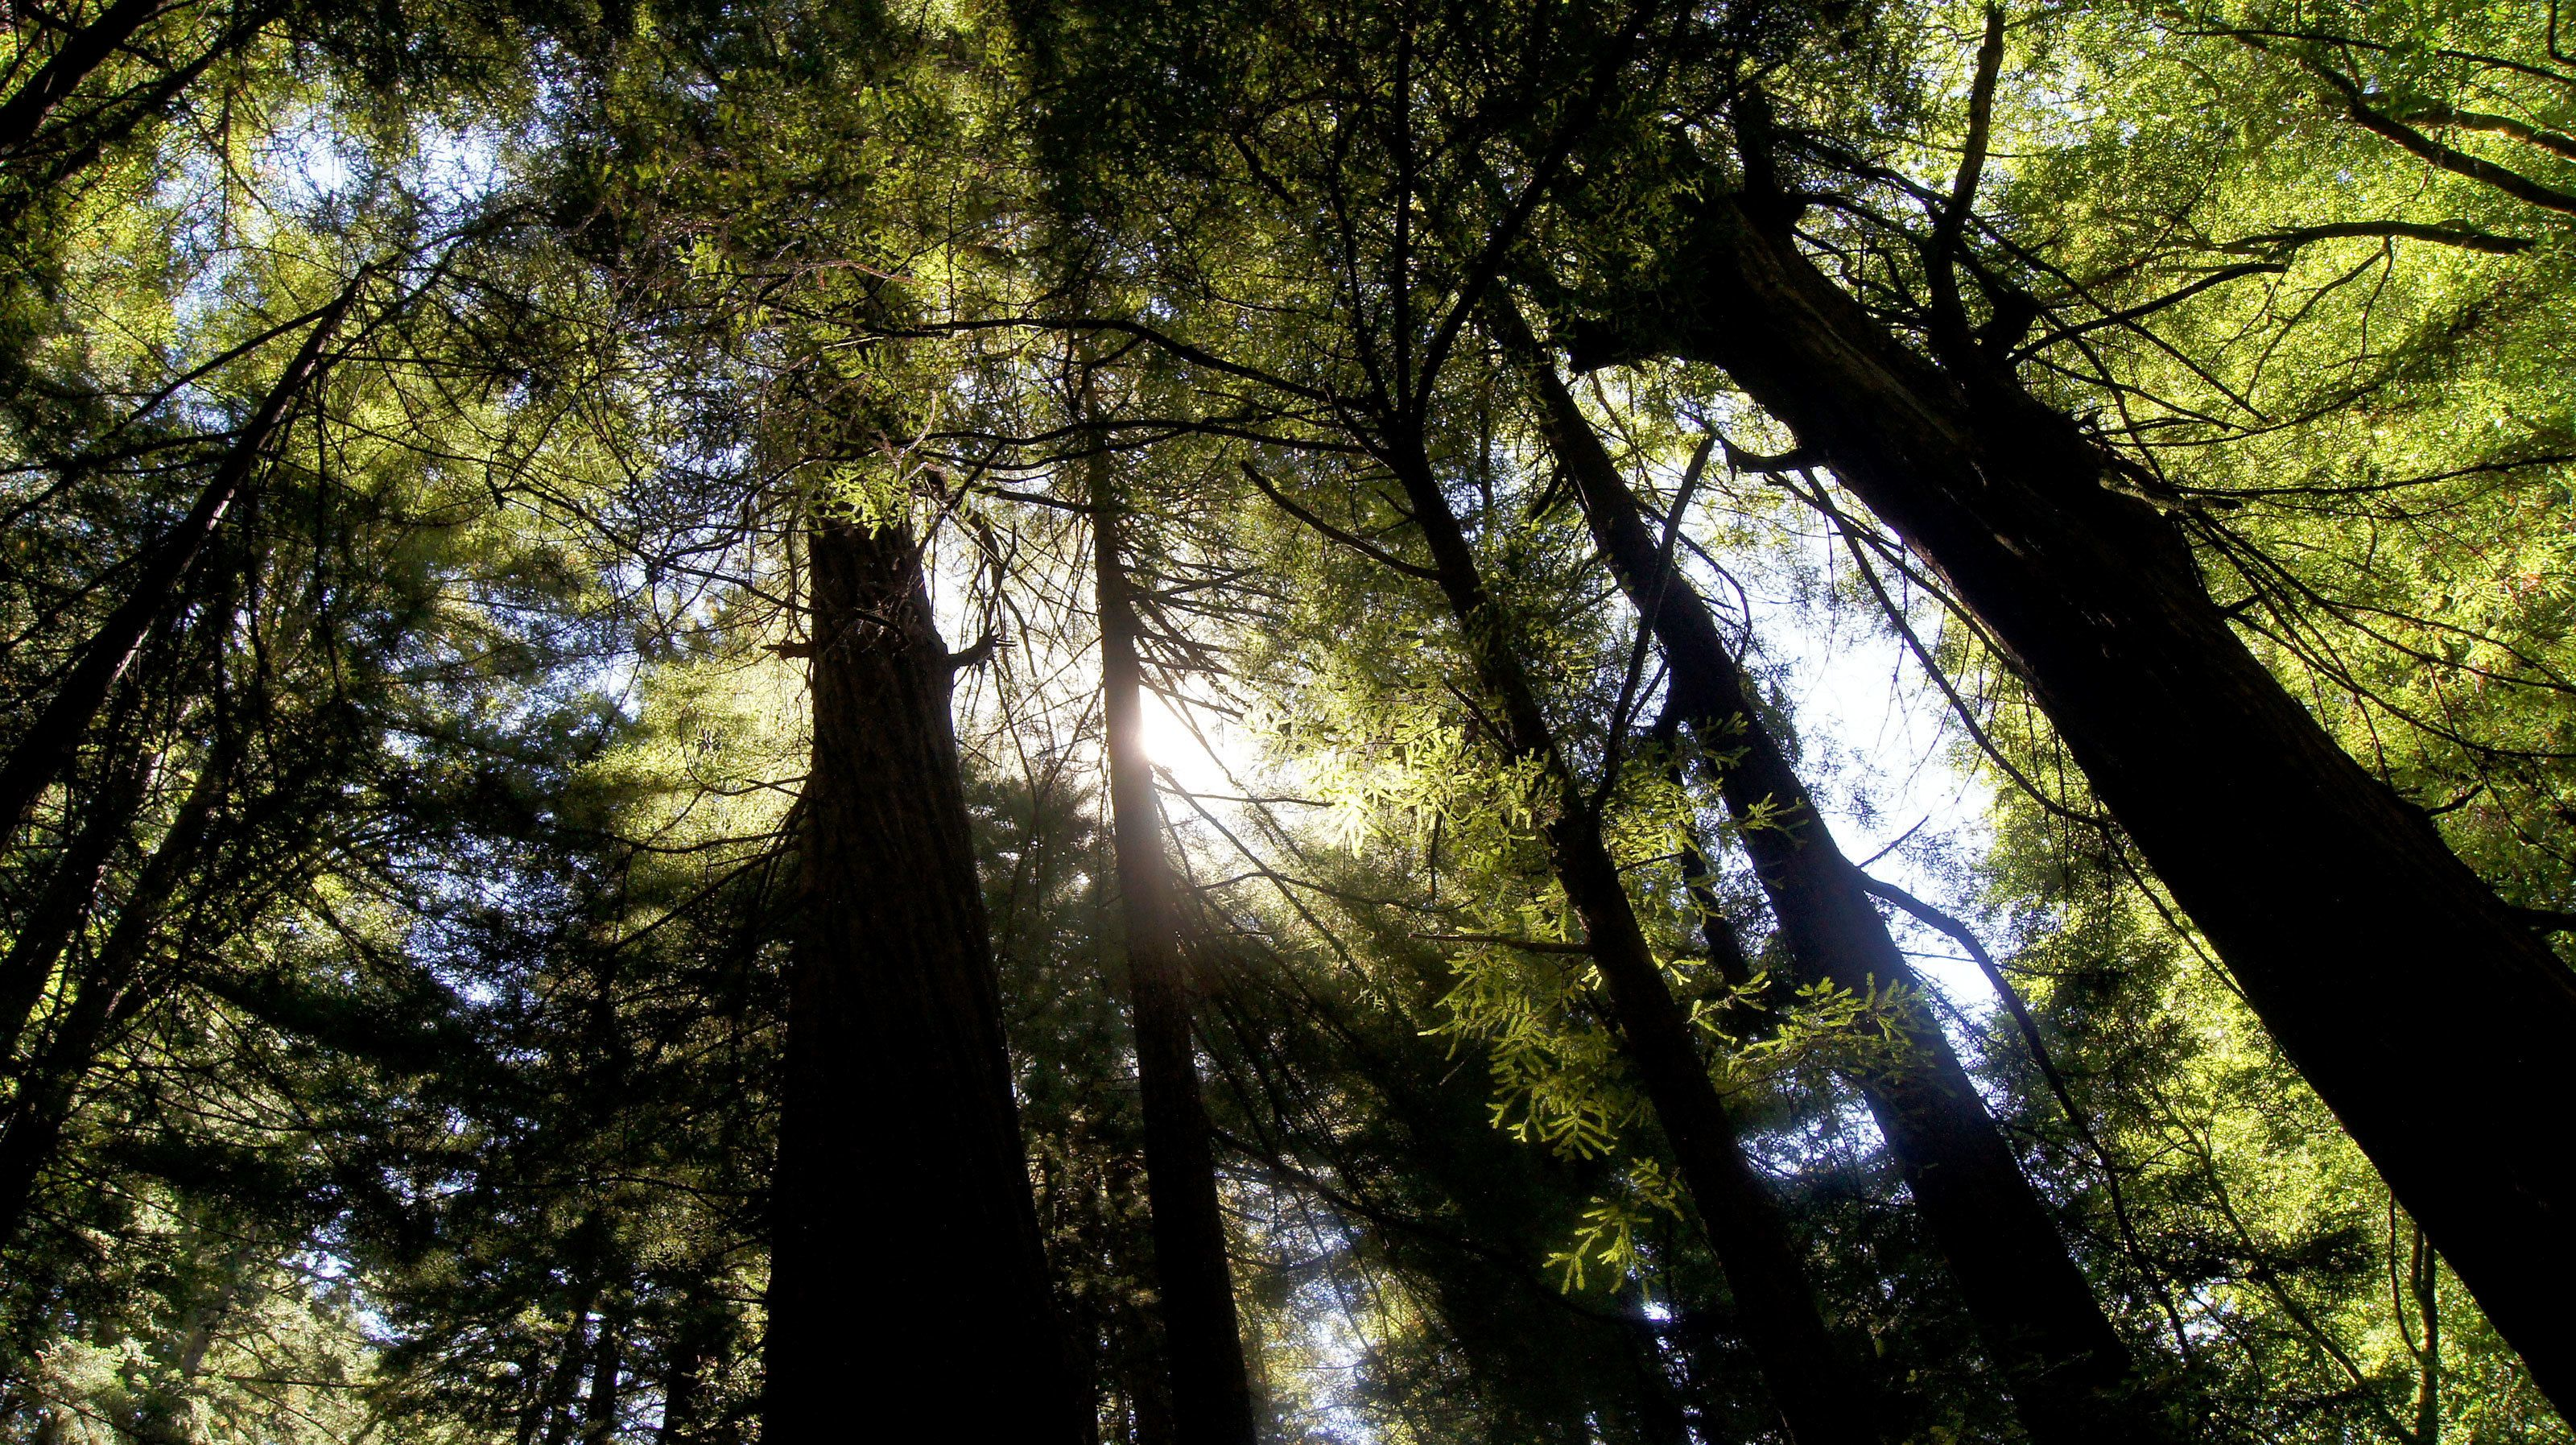 walking through the wooded forest at Muir Woods in San Francisco